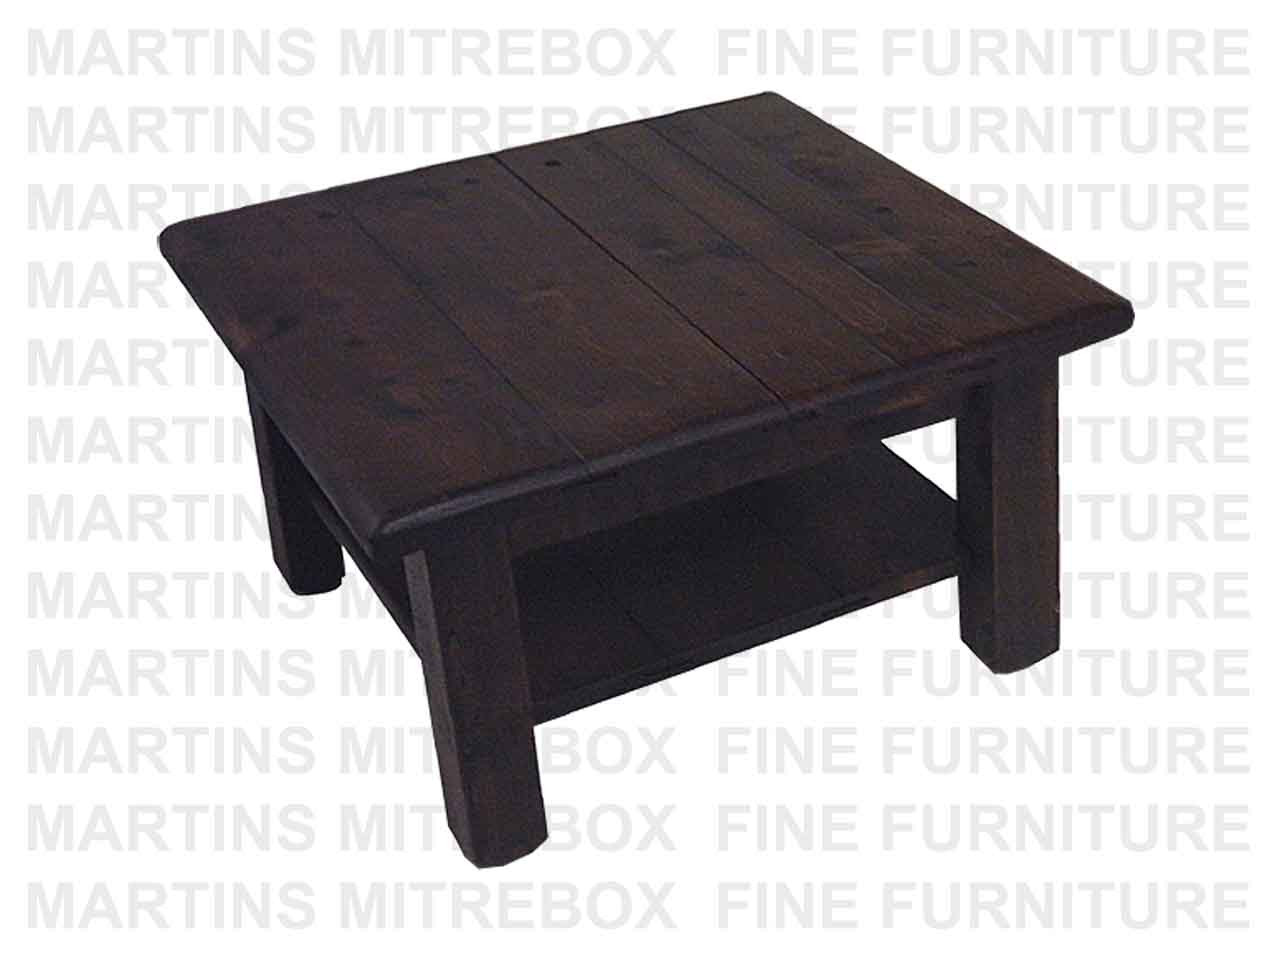 Rustic Coffee Table.Pine Rustic Coffee Table 32 D X 32 W X 18 H With Shelf